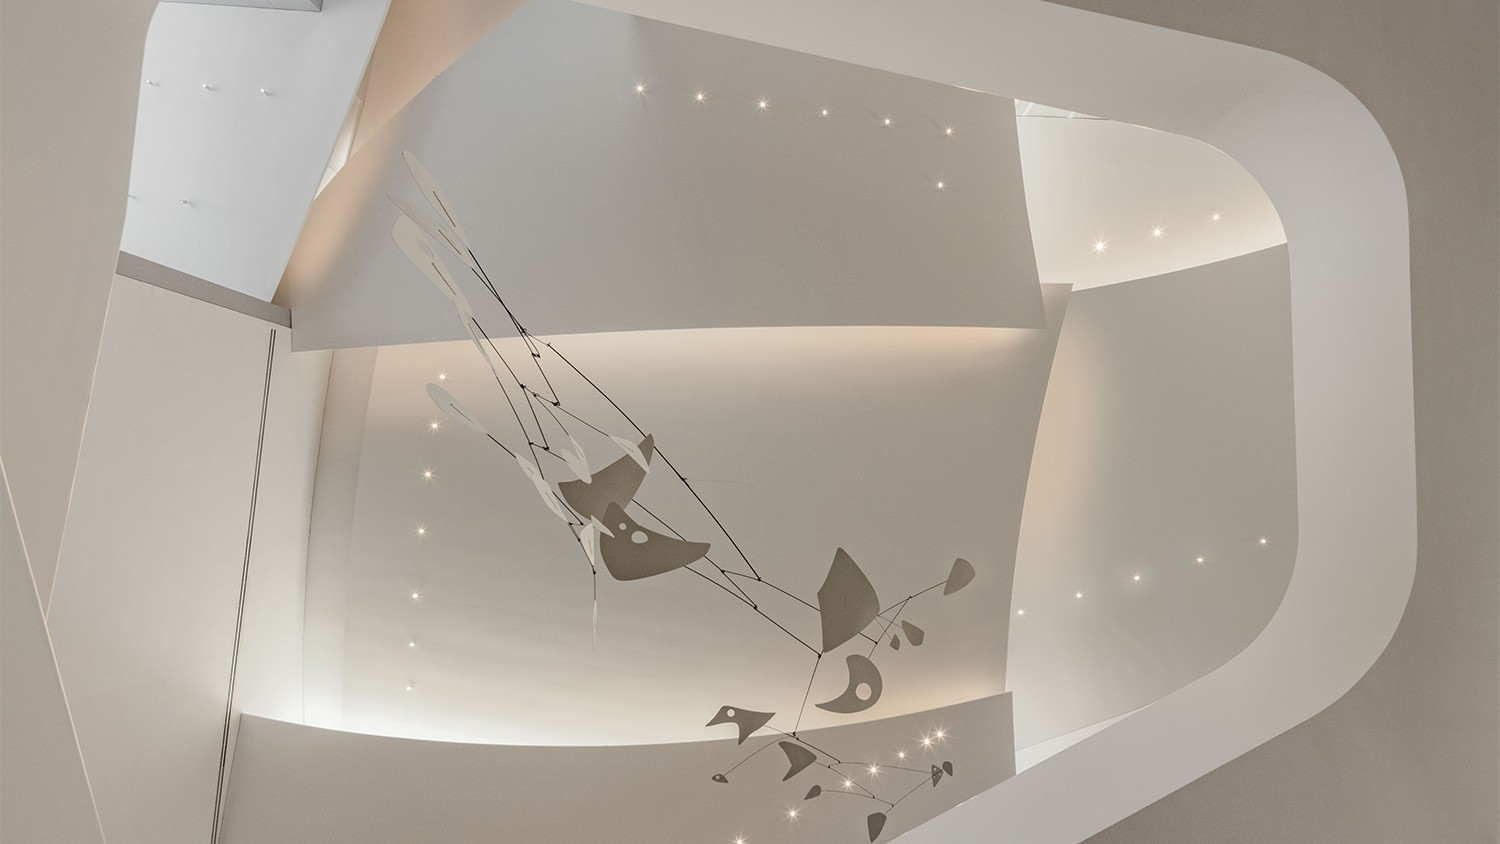 https://stevenholl.sfo2.digitaloceanspaces.com/uploads/projects/project-images/RichardBarnes_ceiling.jpg